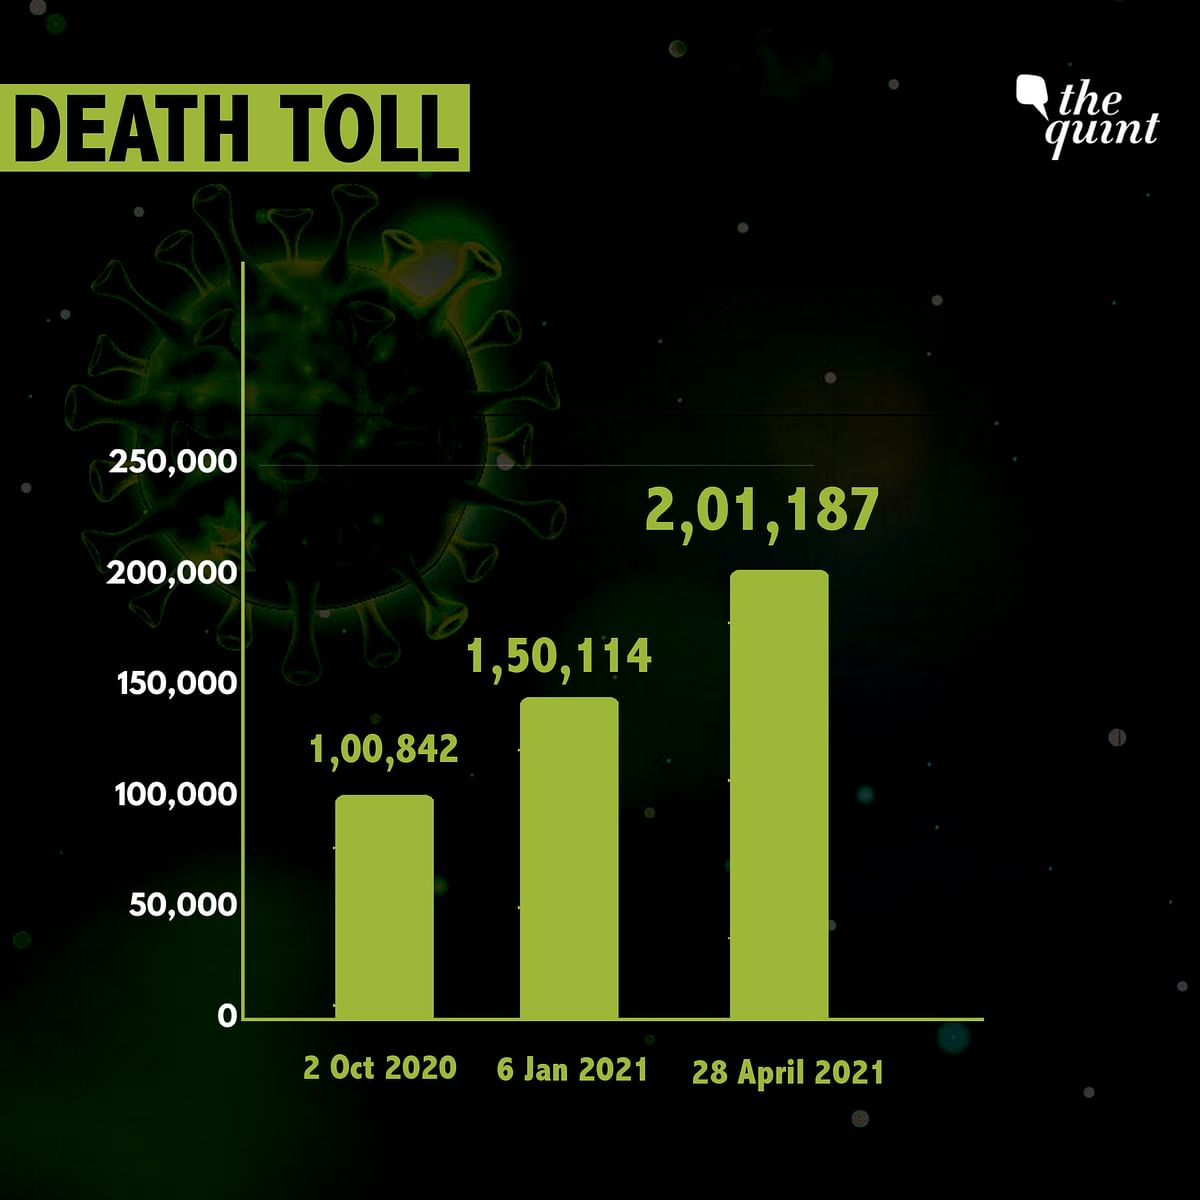 India had crossed the 1 lakh mark on 2 October, 2020.